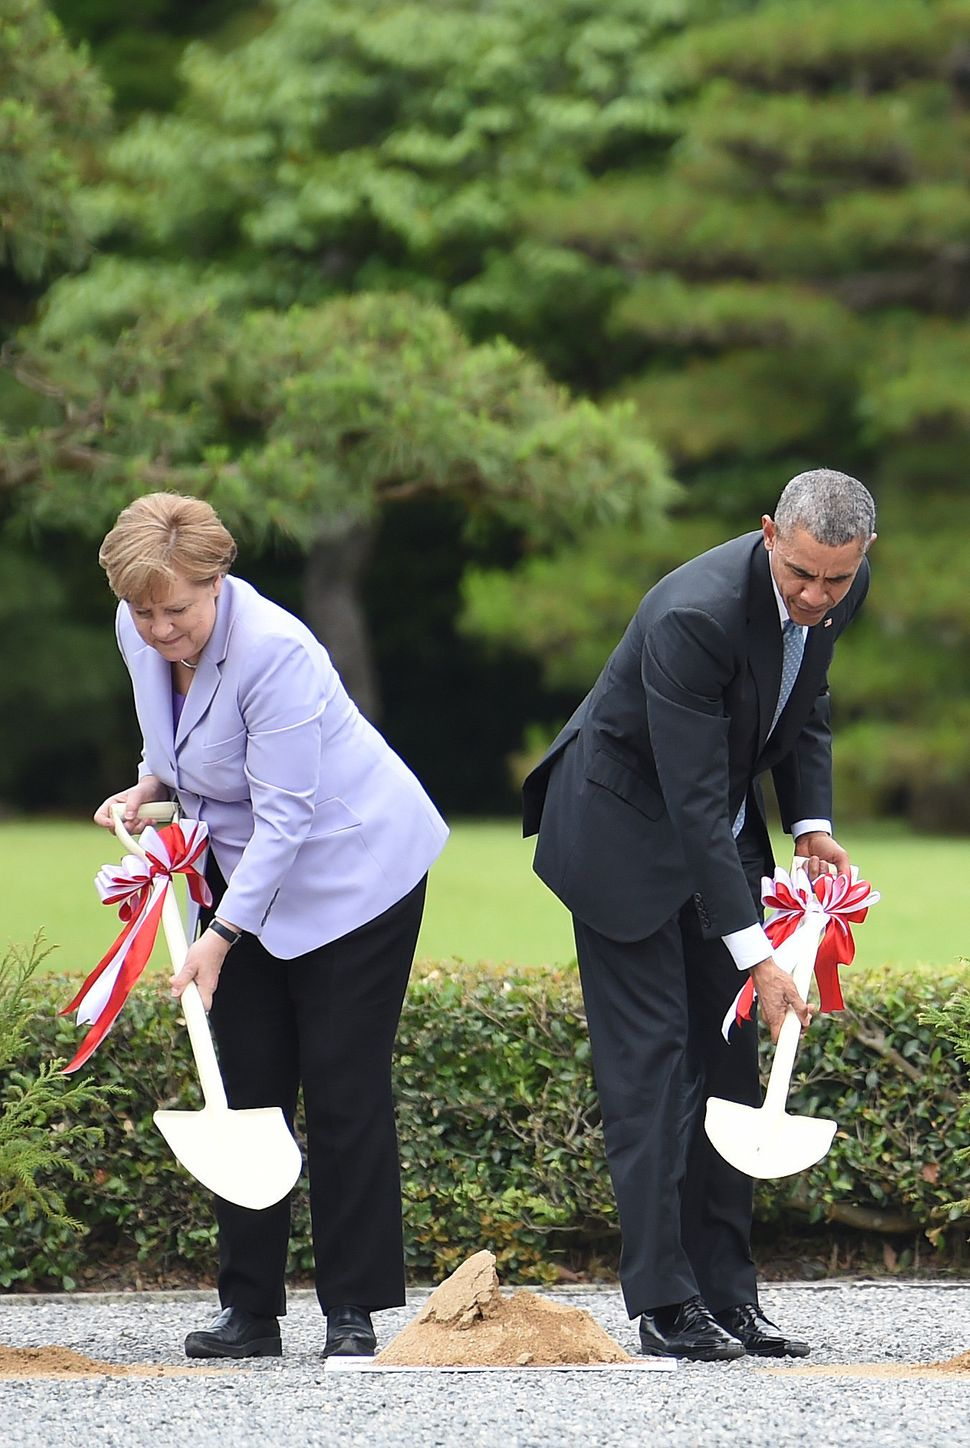 Merkel and Obama take part in a tree-planting ceremony on the grounds of the Ise-Jingu Shrine in the city of Ise, in Mie pref